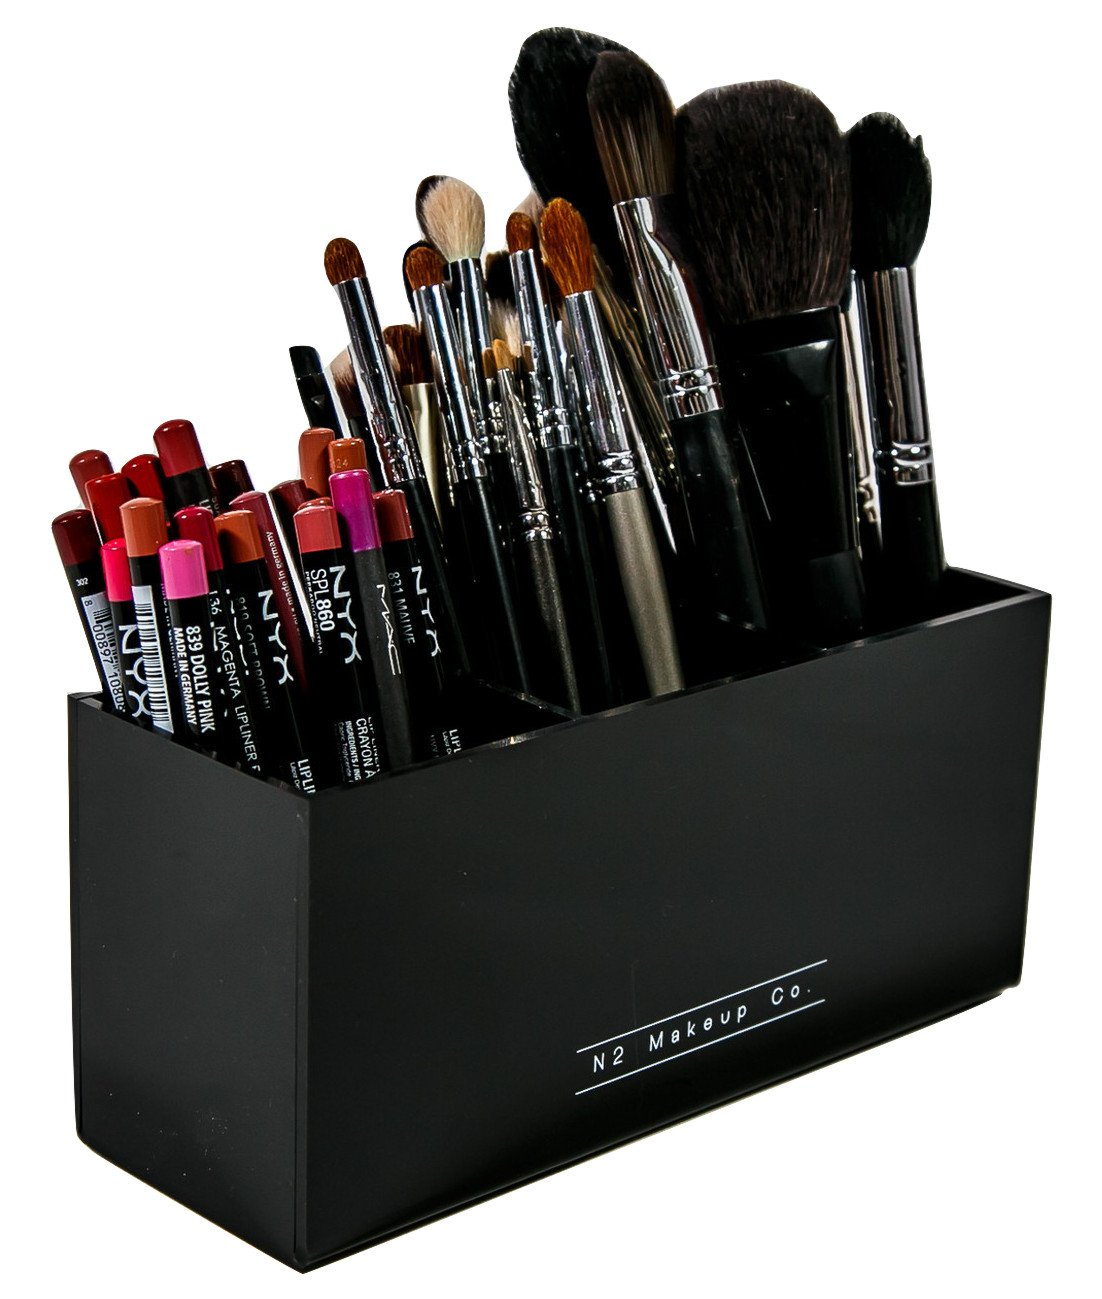 Makeup Brush Holder Organizer - 3 Slot Acrylic Cosmetics Brushes Storage  Solution By N2 Makeup Co